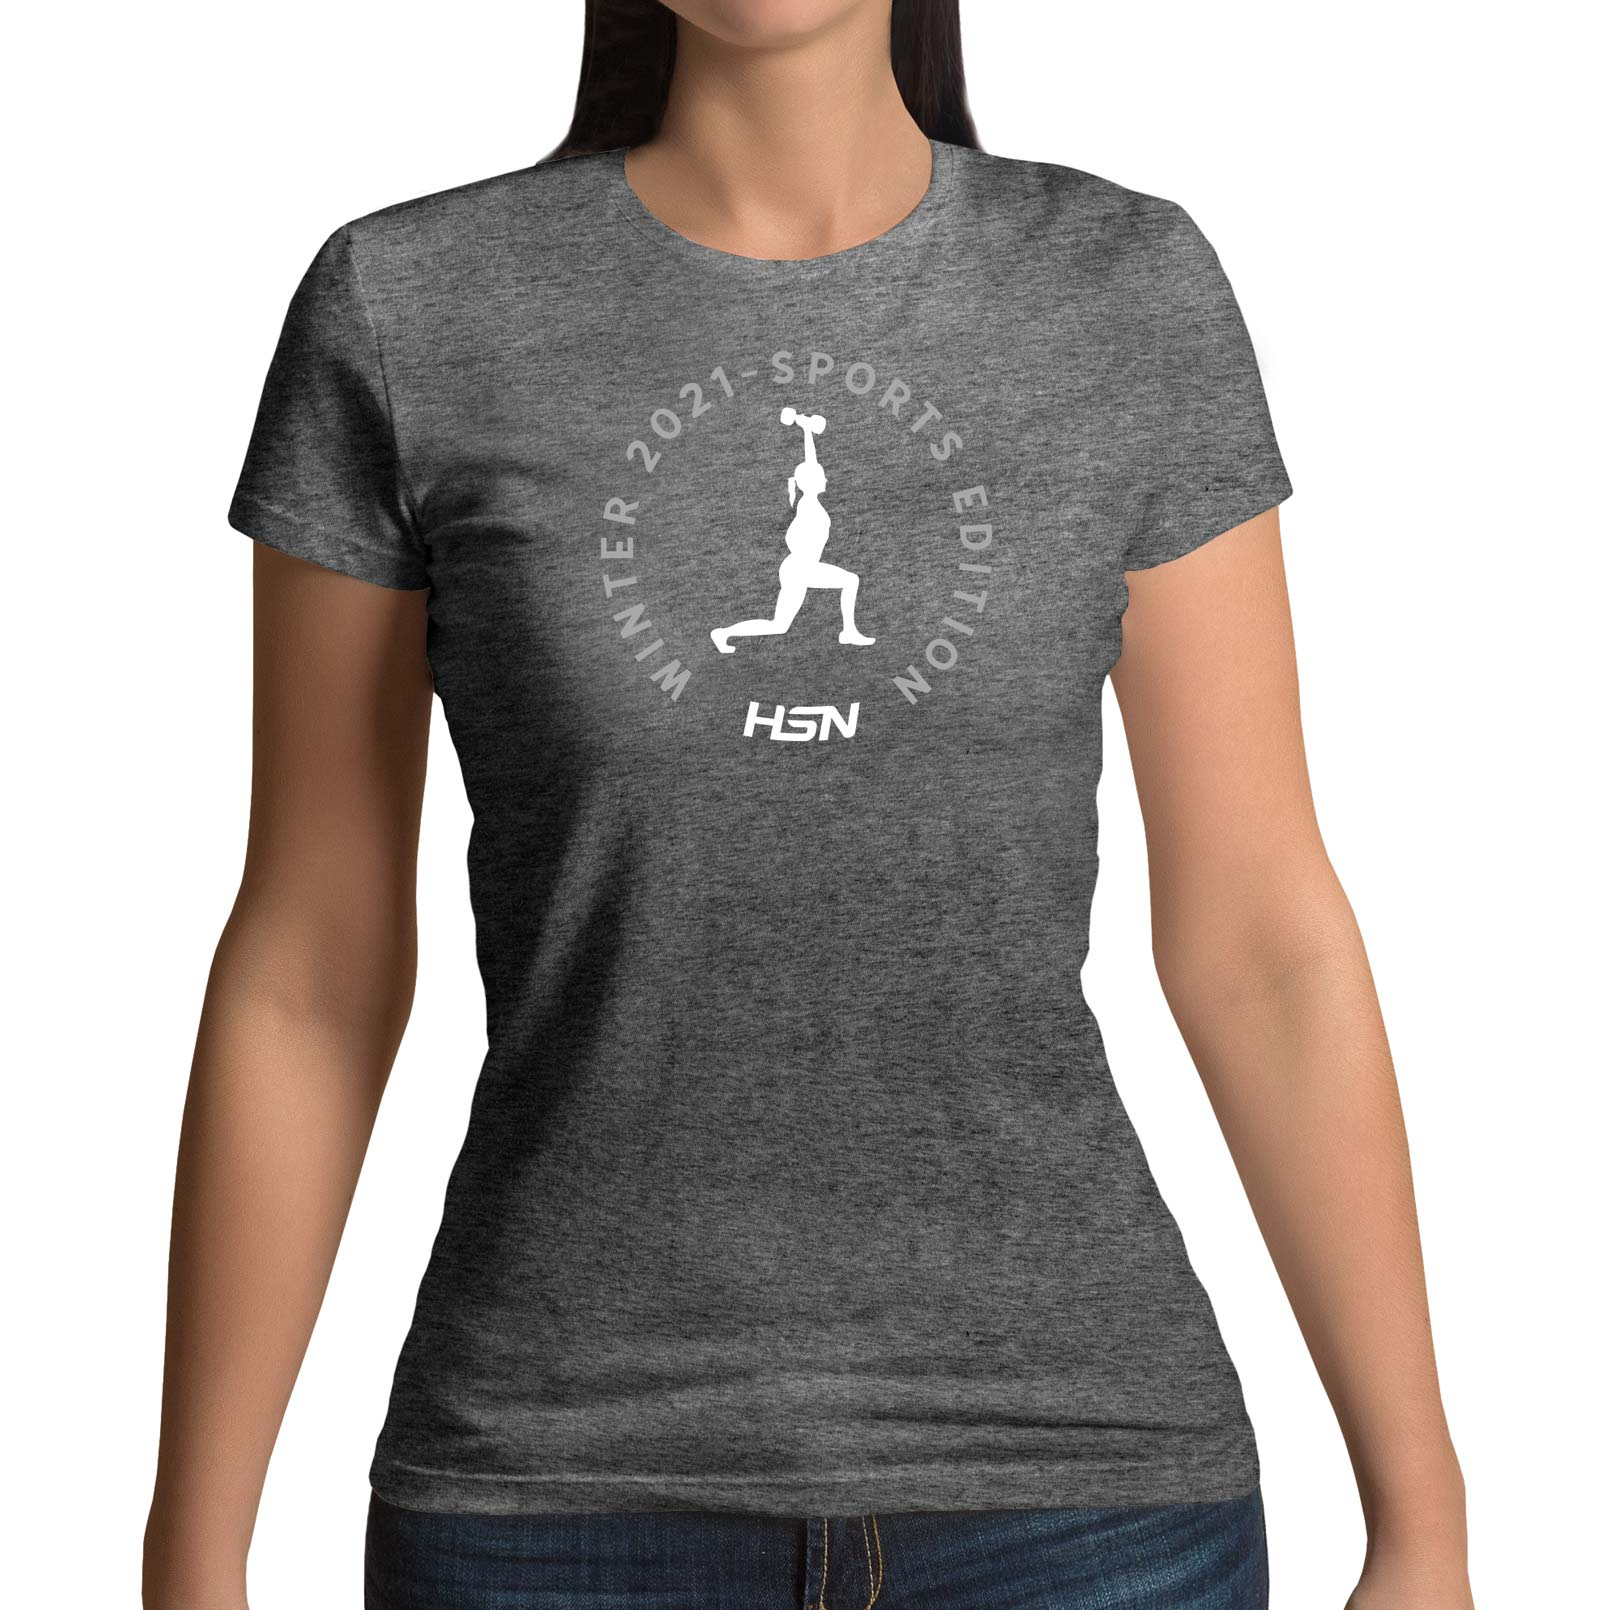 CAMISETA CHICA WINTER 2021 SPORTS EDITION FITNESS GRIS - M